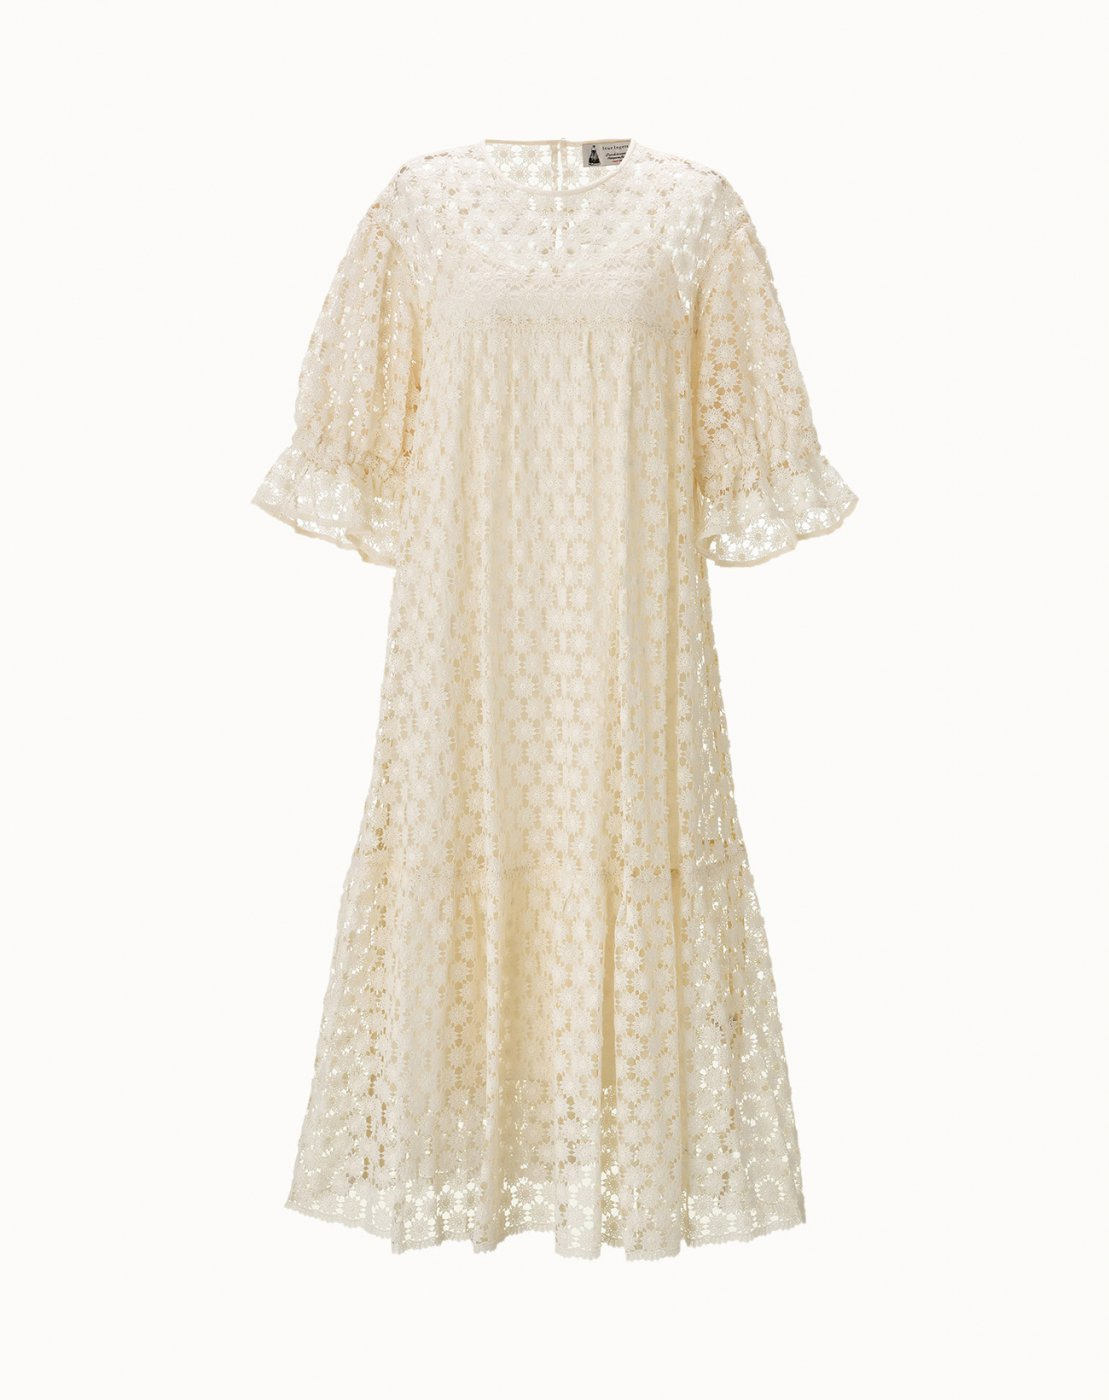 leur logette - Embroidery Dress - Off White